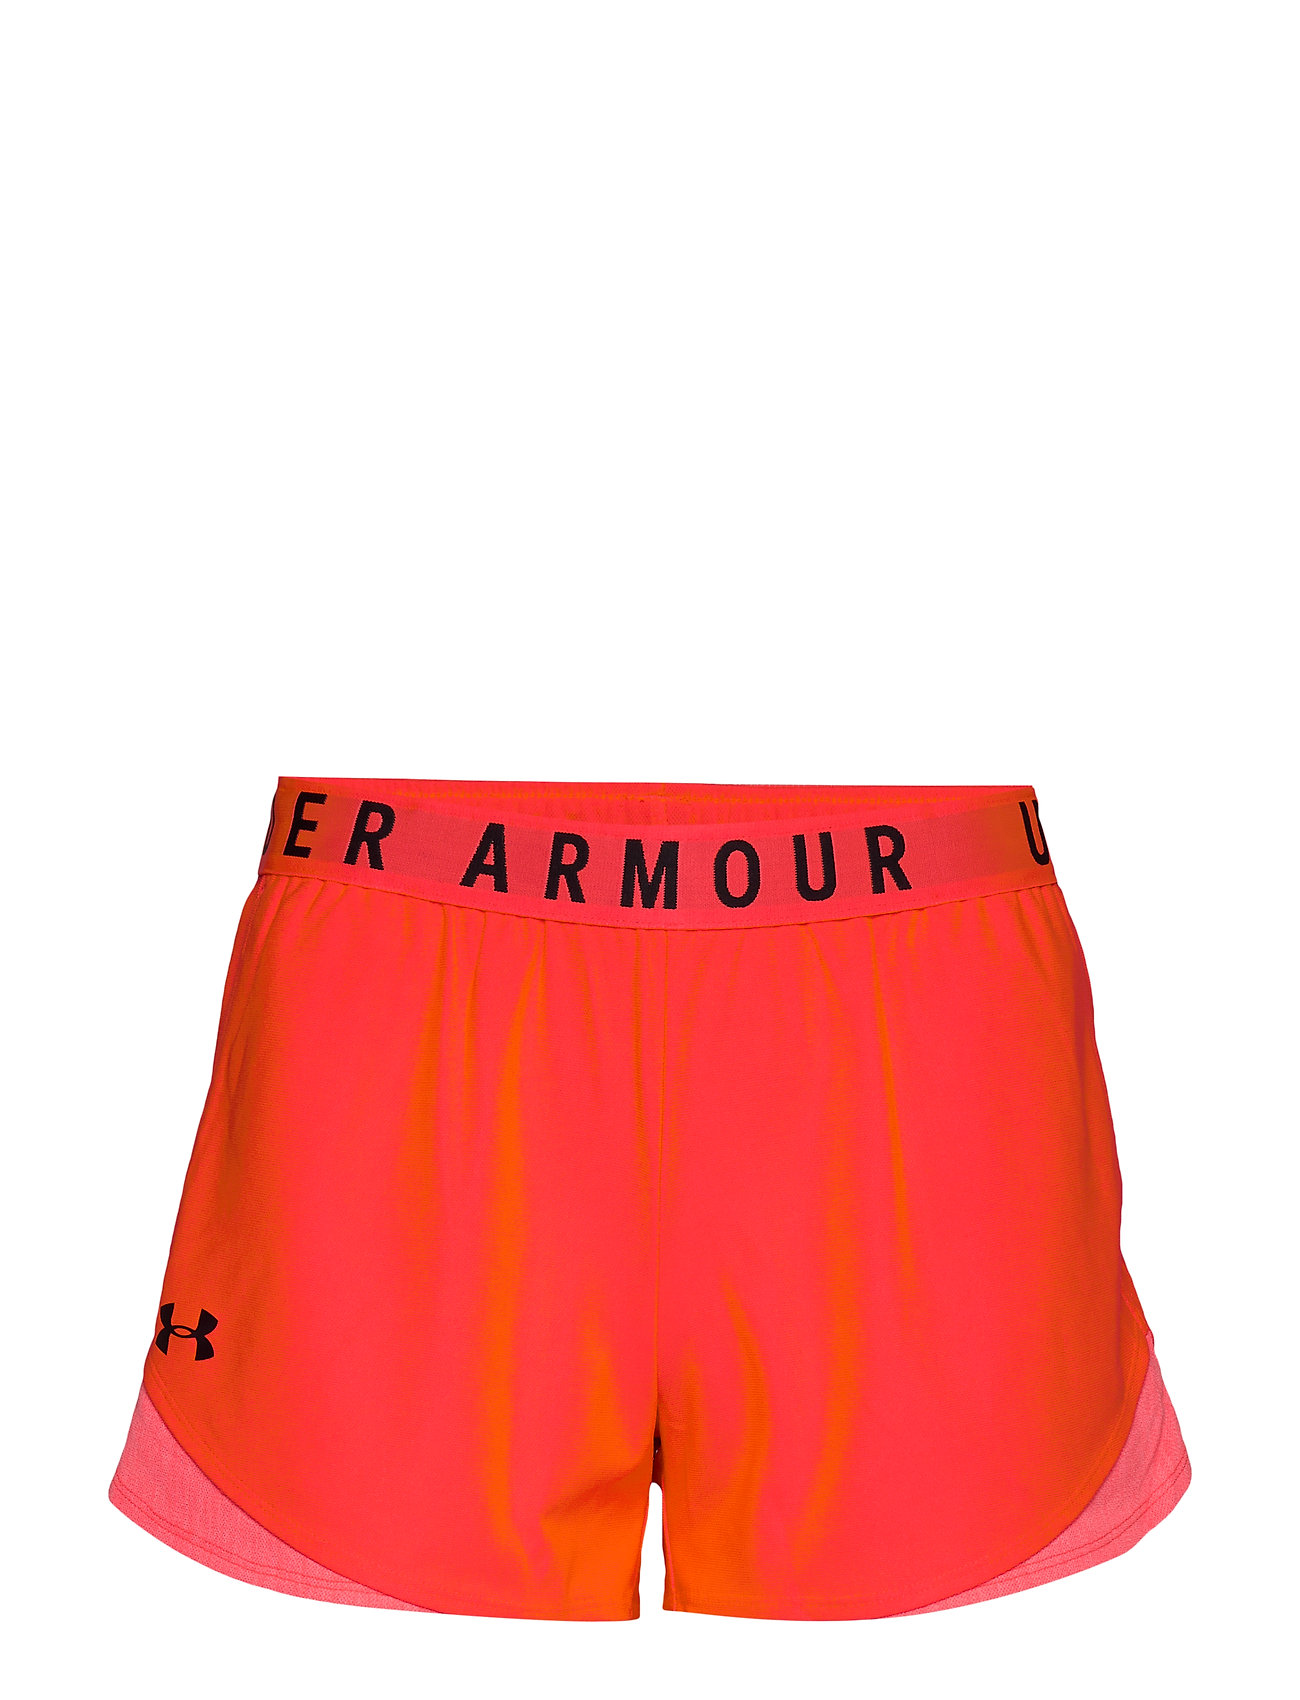 Under Armour PLAY UP SHORT 3.0 TWIST INSET - BETA RED